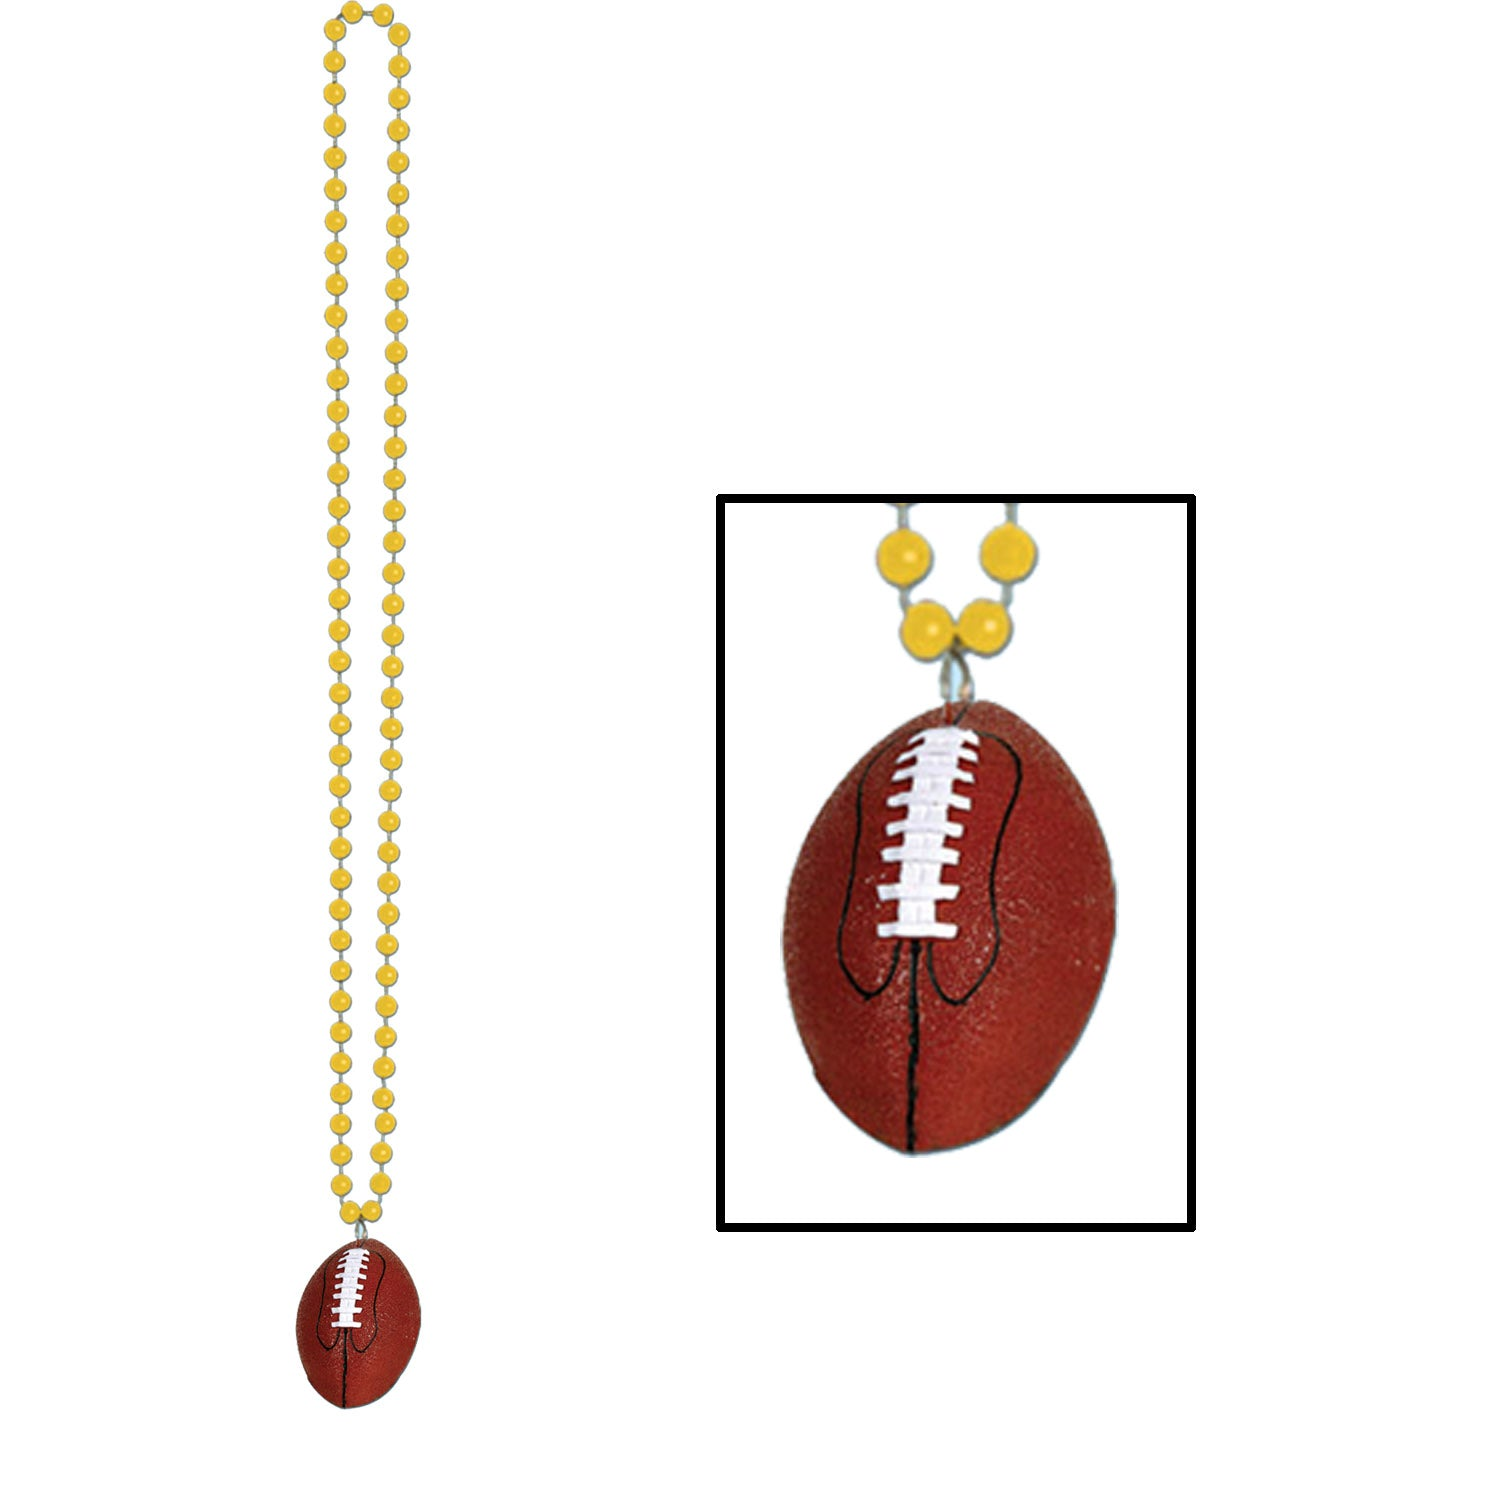 claire best necklaces s friend pendant football